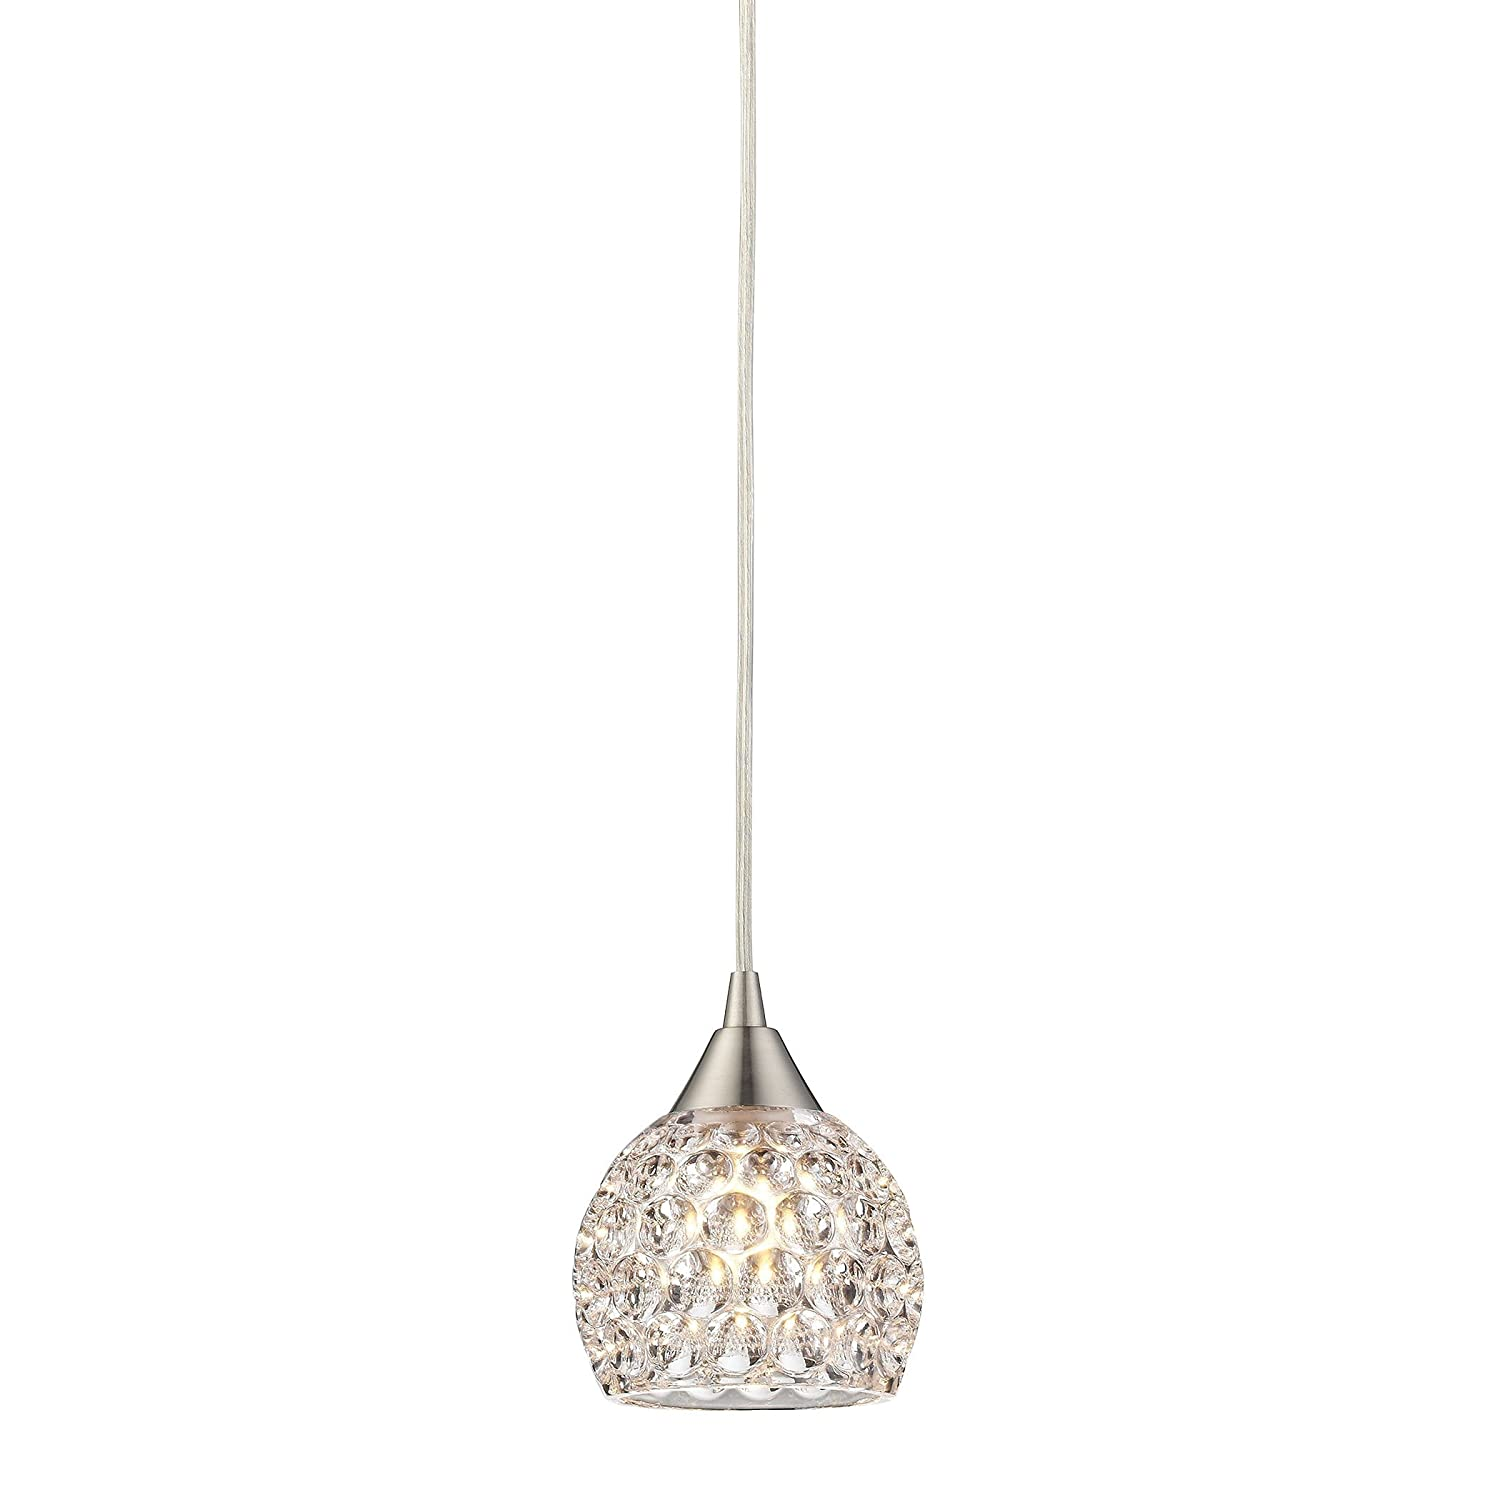 Awesome Satin Nickel Pendant Light Part - 13: Elk Lighting 10341/1 Kersey Collection 1 Light Mini Pendant, Satin Nickel -  - Amazon.com